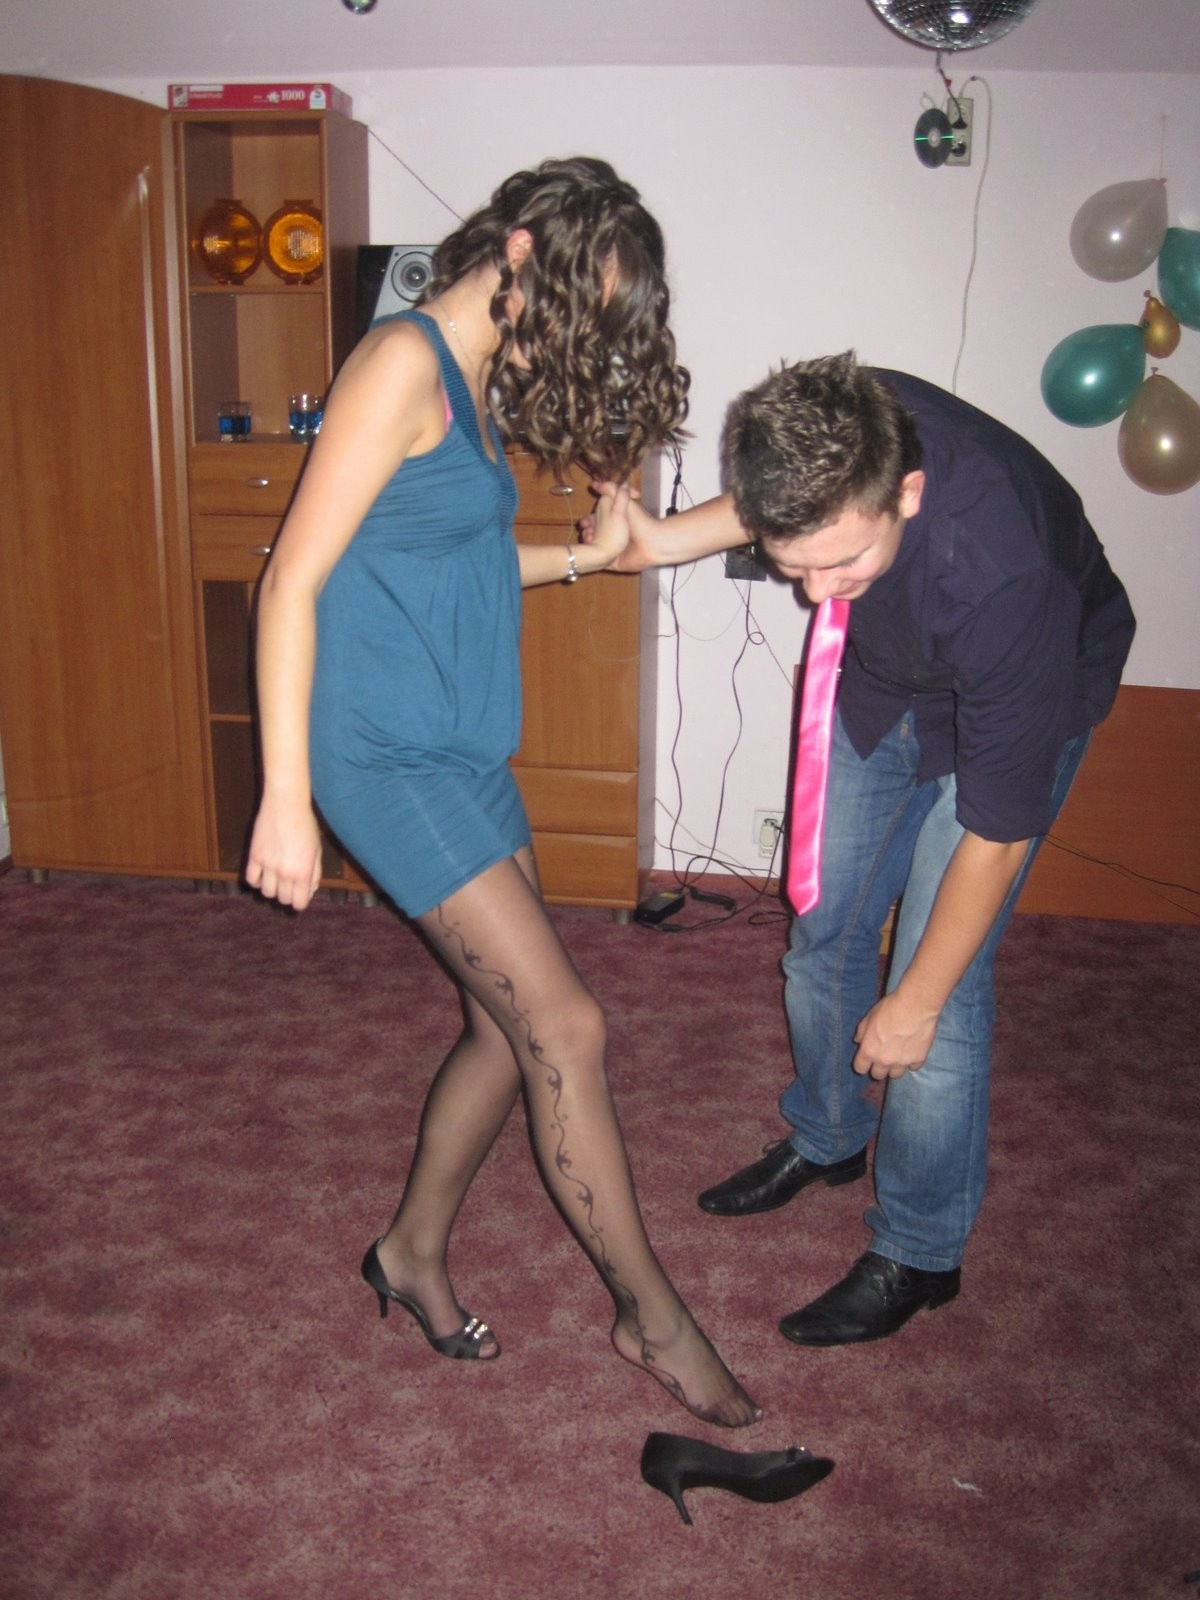 Get much alcohol in pantyhose body